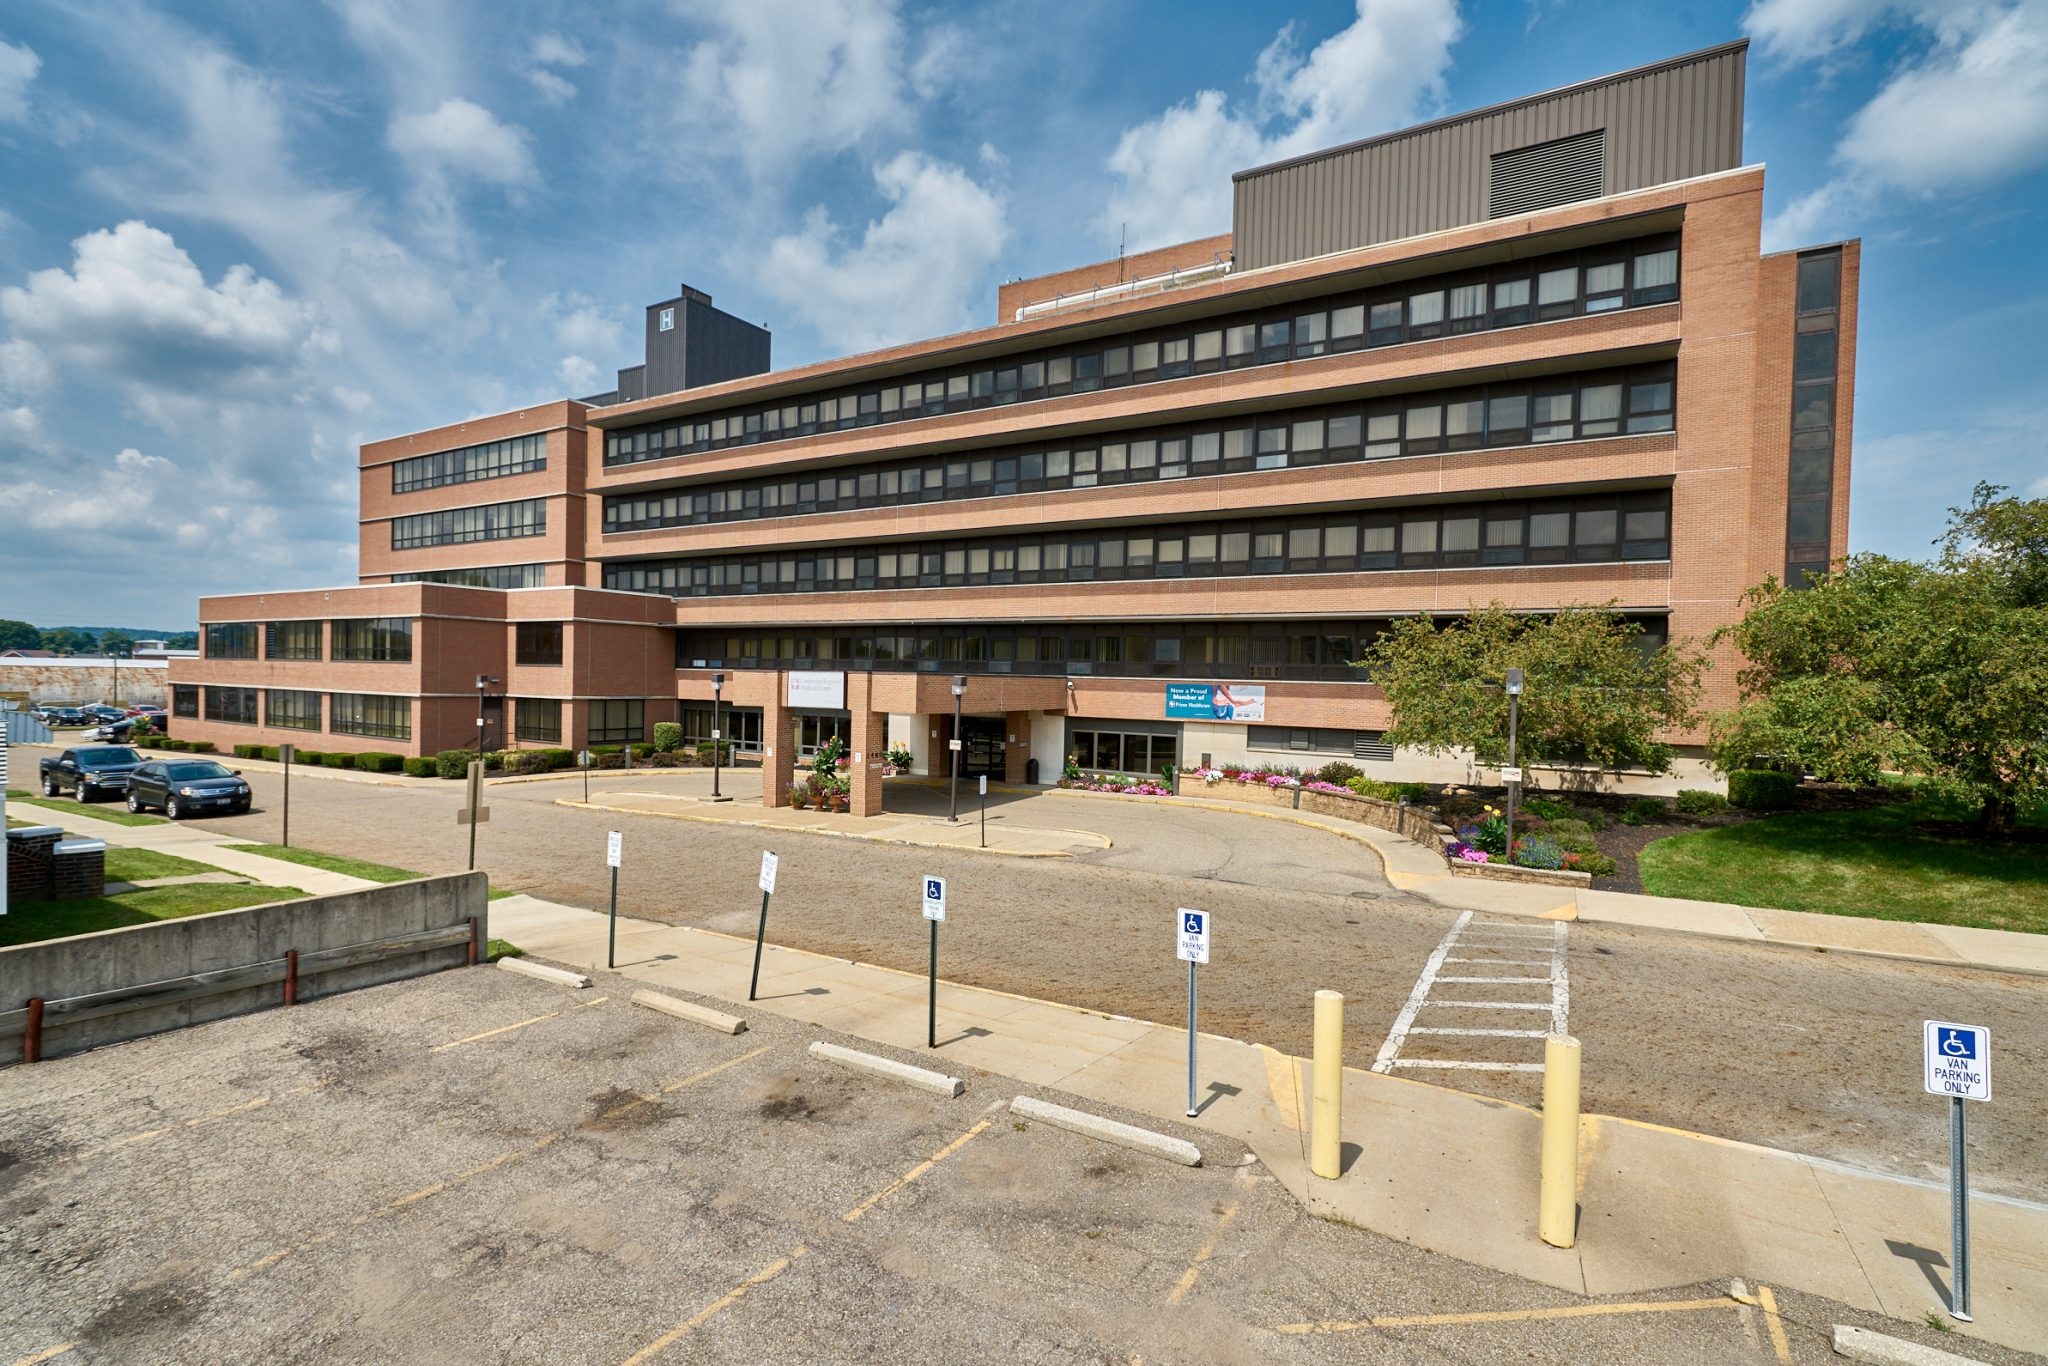 Coshocton Regional Medical receives honors